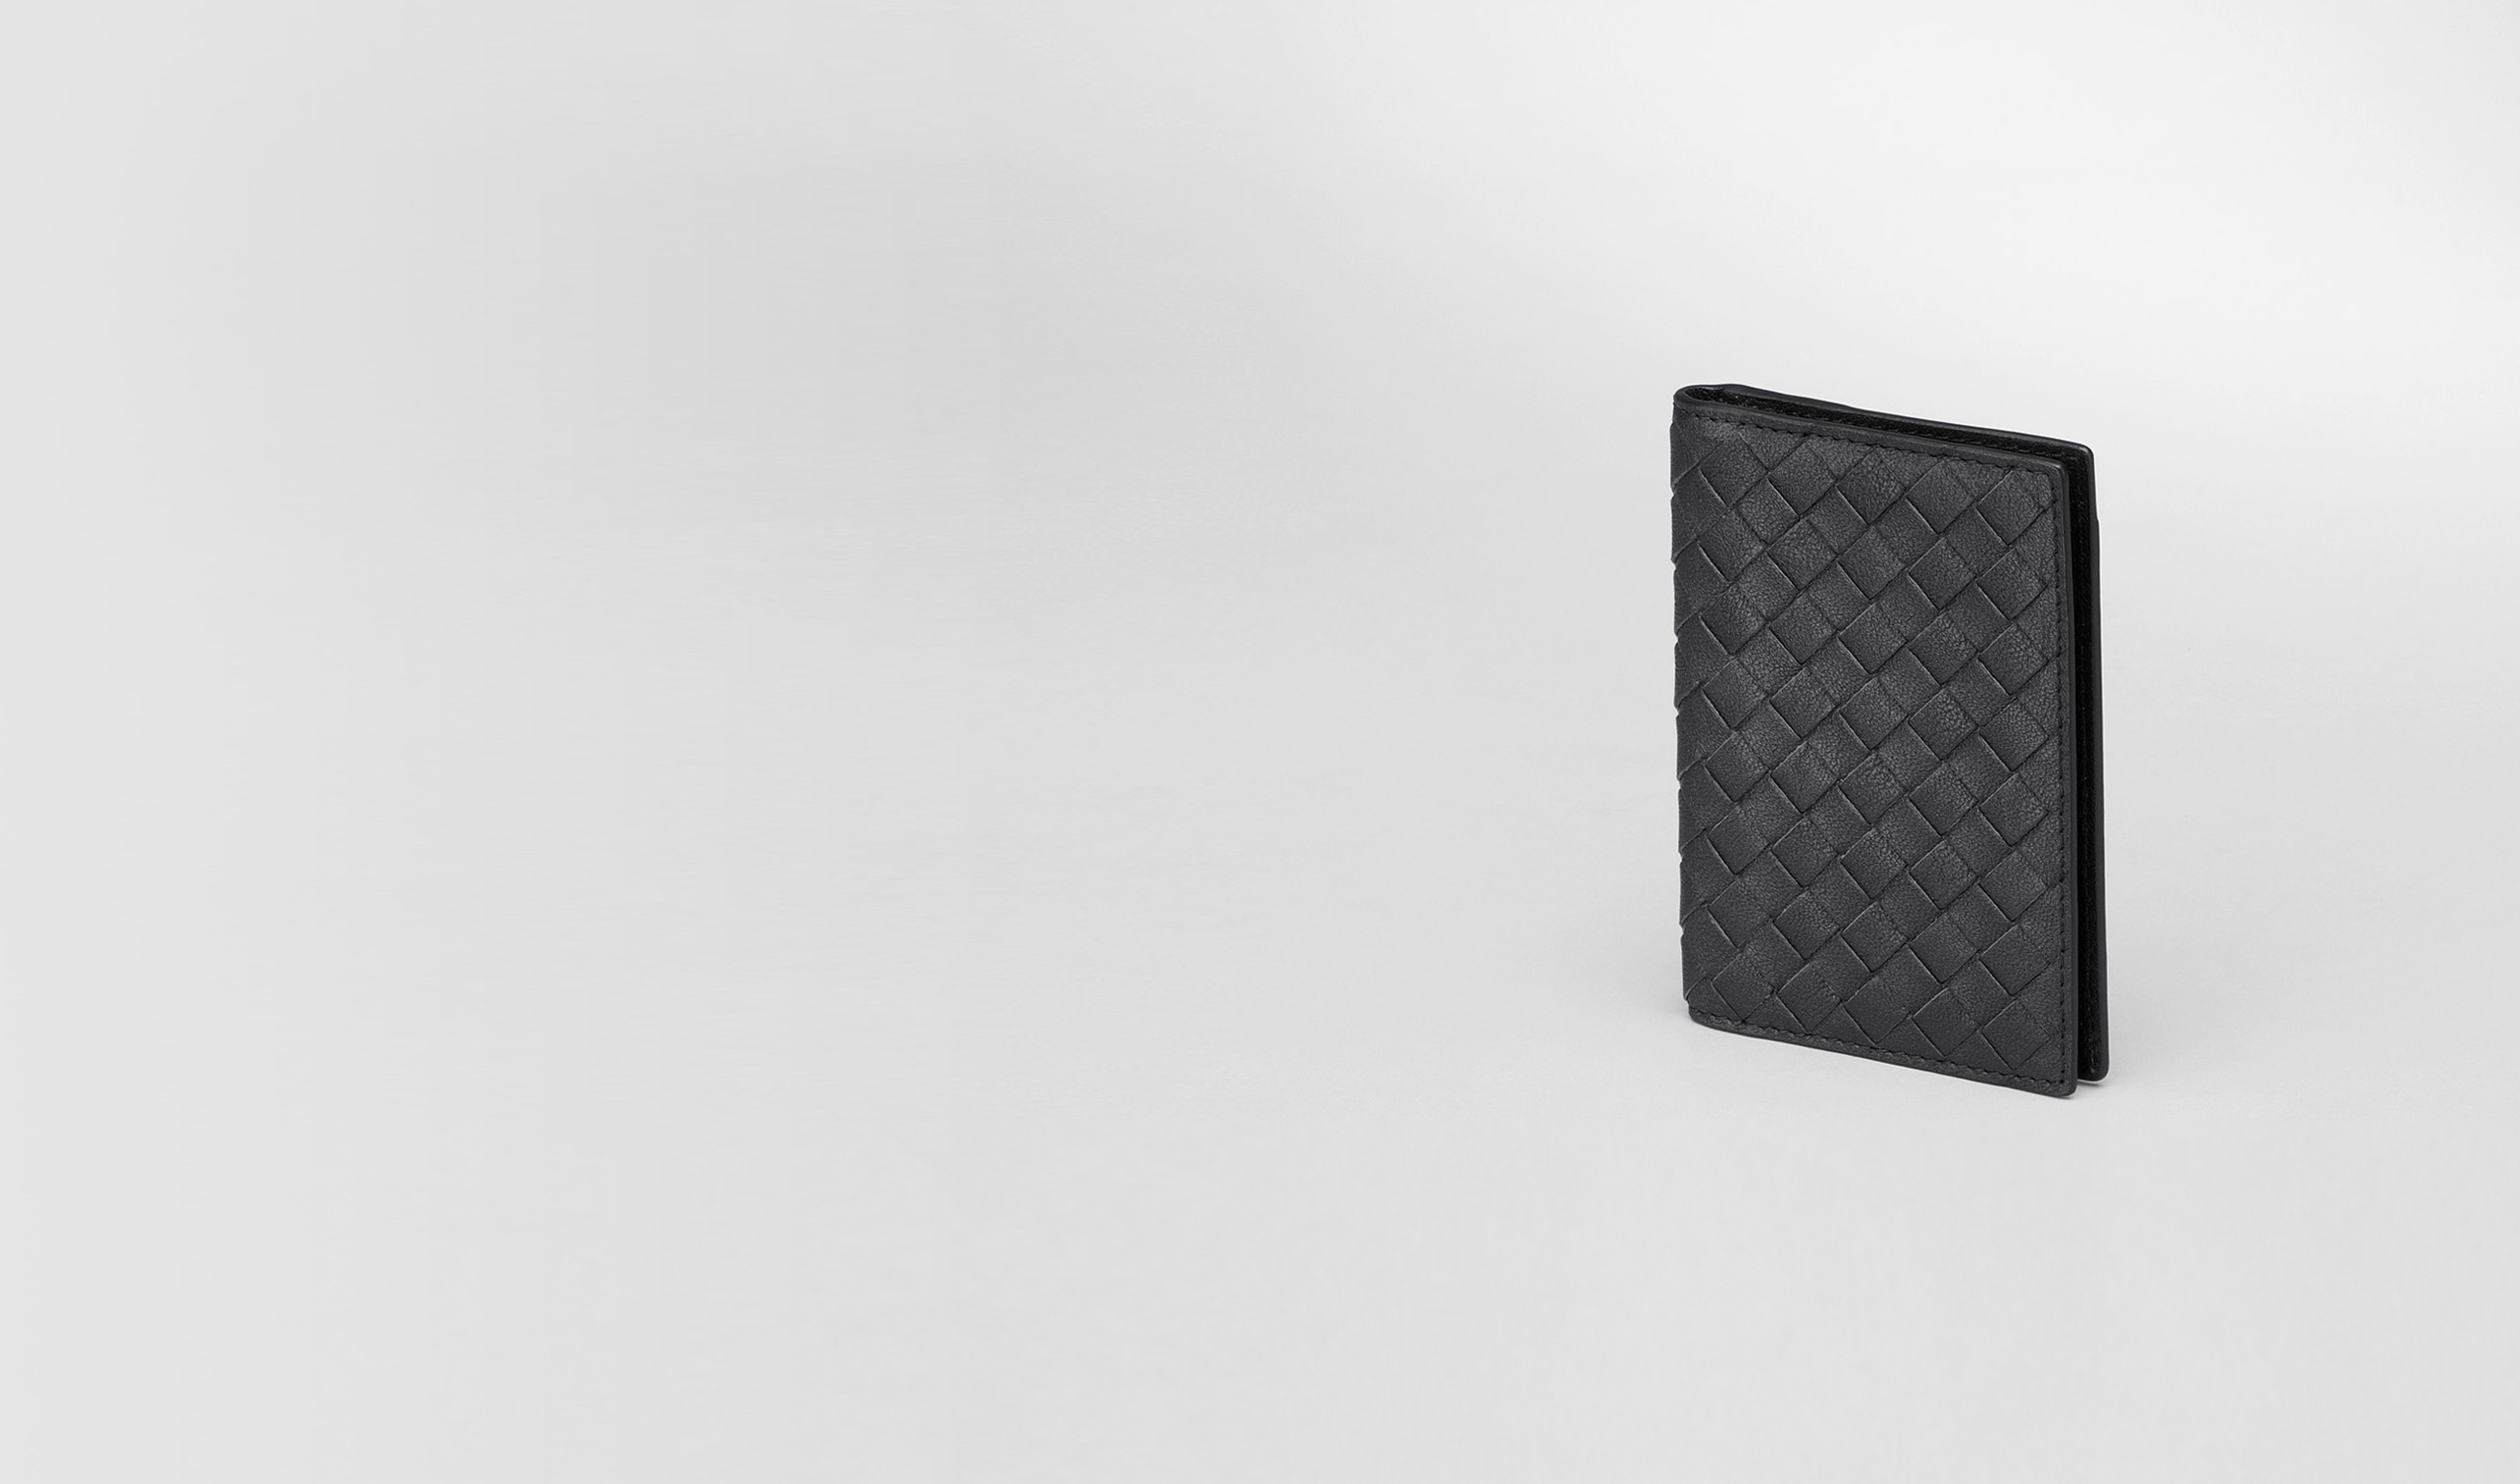 BOTTEGA VENETA Other Leather Accessory D Nero Intrecciato Washed Lambskin Card Case pl